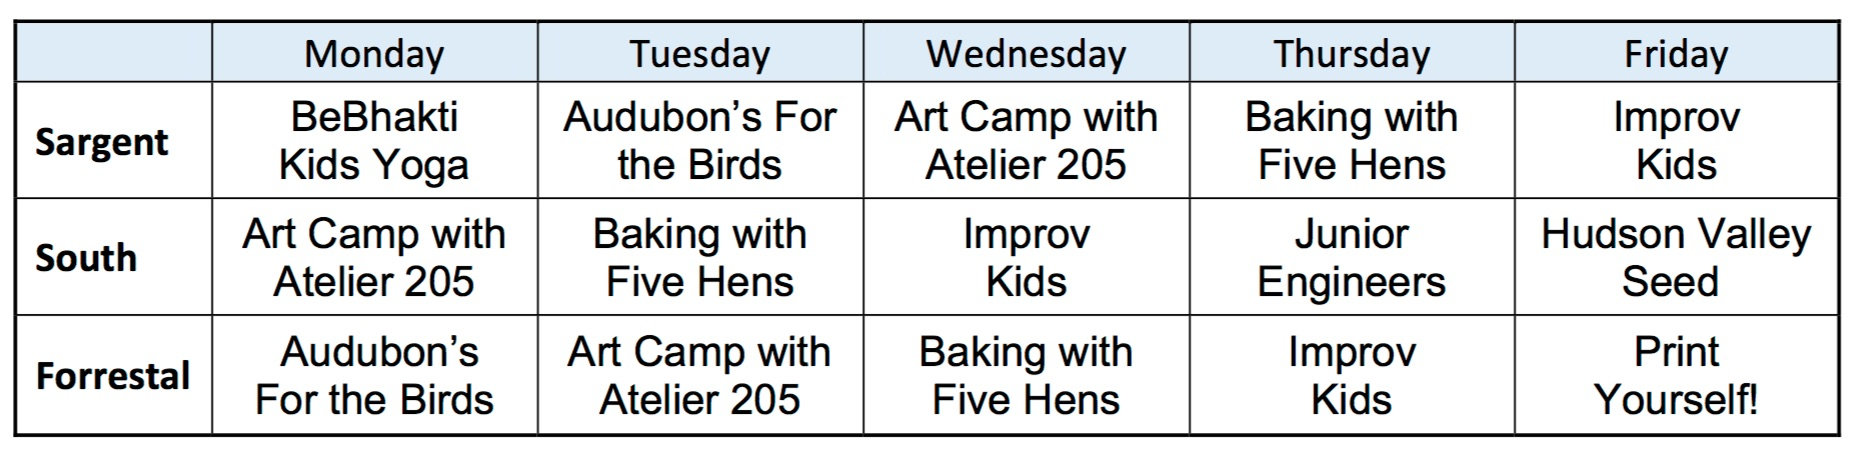 Please note that this schedule was taken from the City of Beacon's website on 8/2/16, and may have changed. Please see the website for  Beacon's After School Program  for the most up-to-date listing and details.